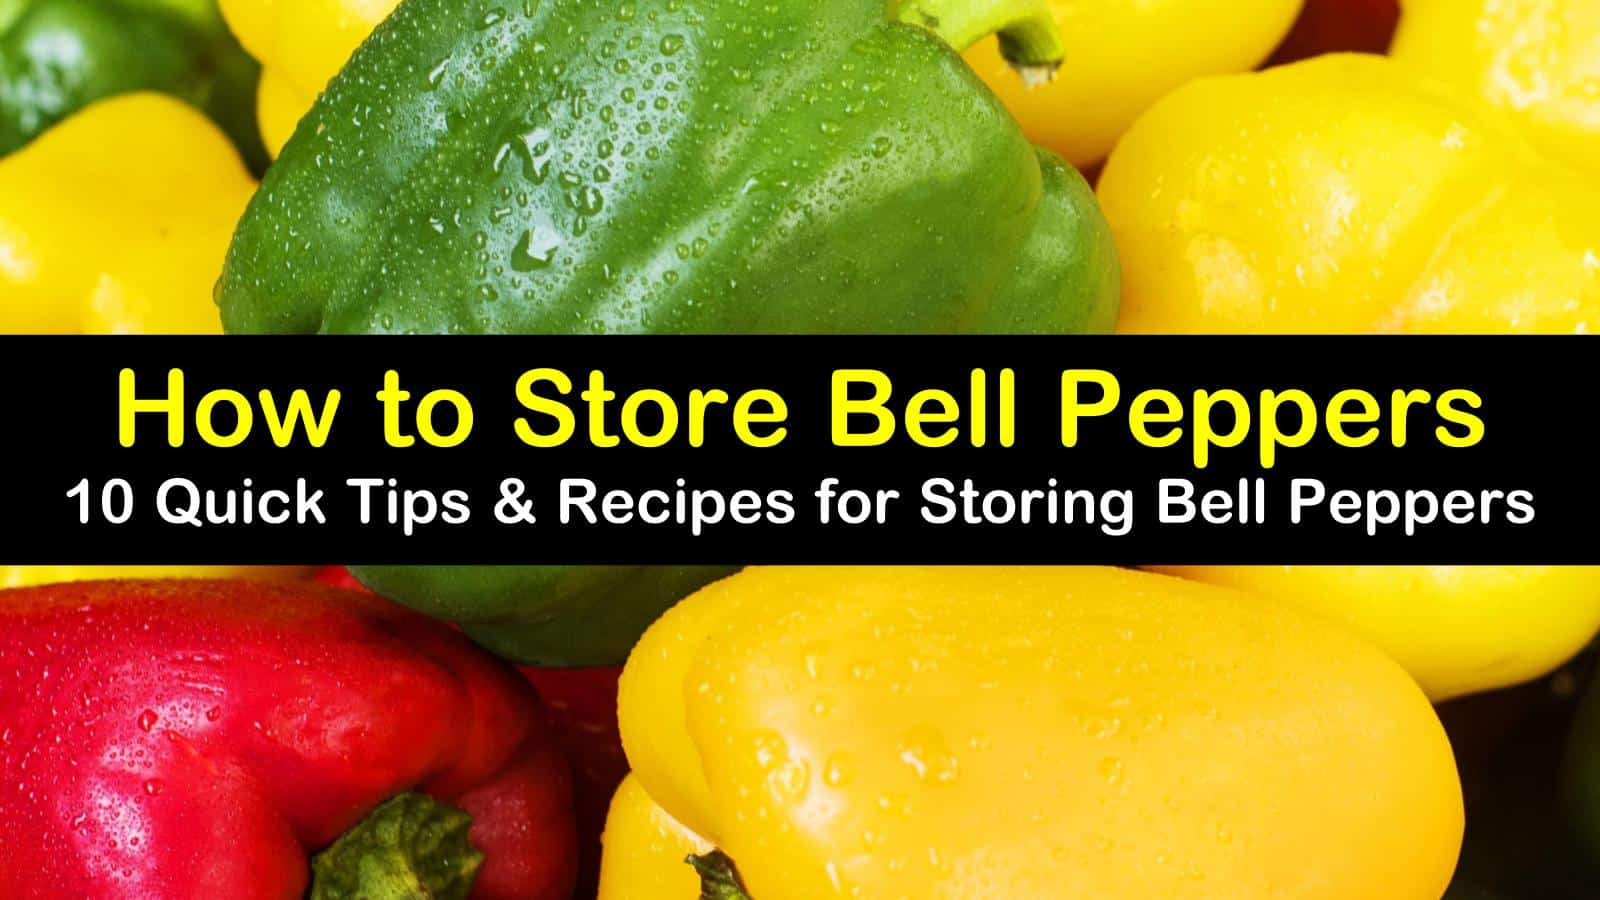 how to store bell peppers titleimg1